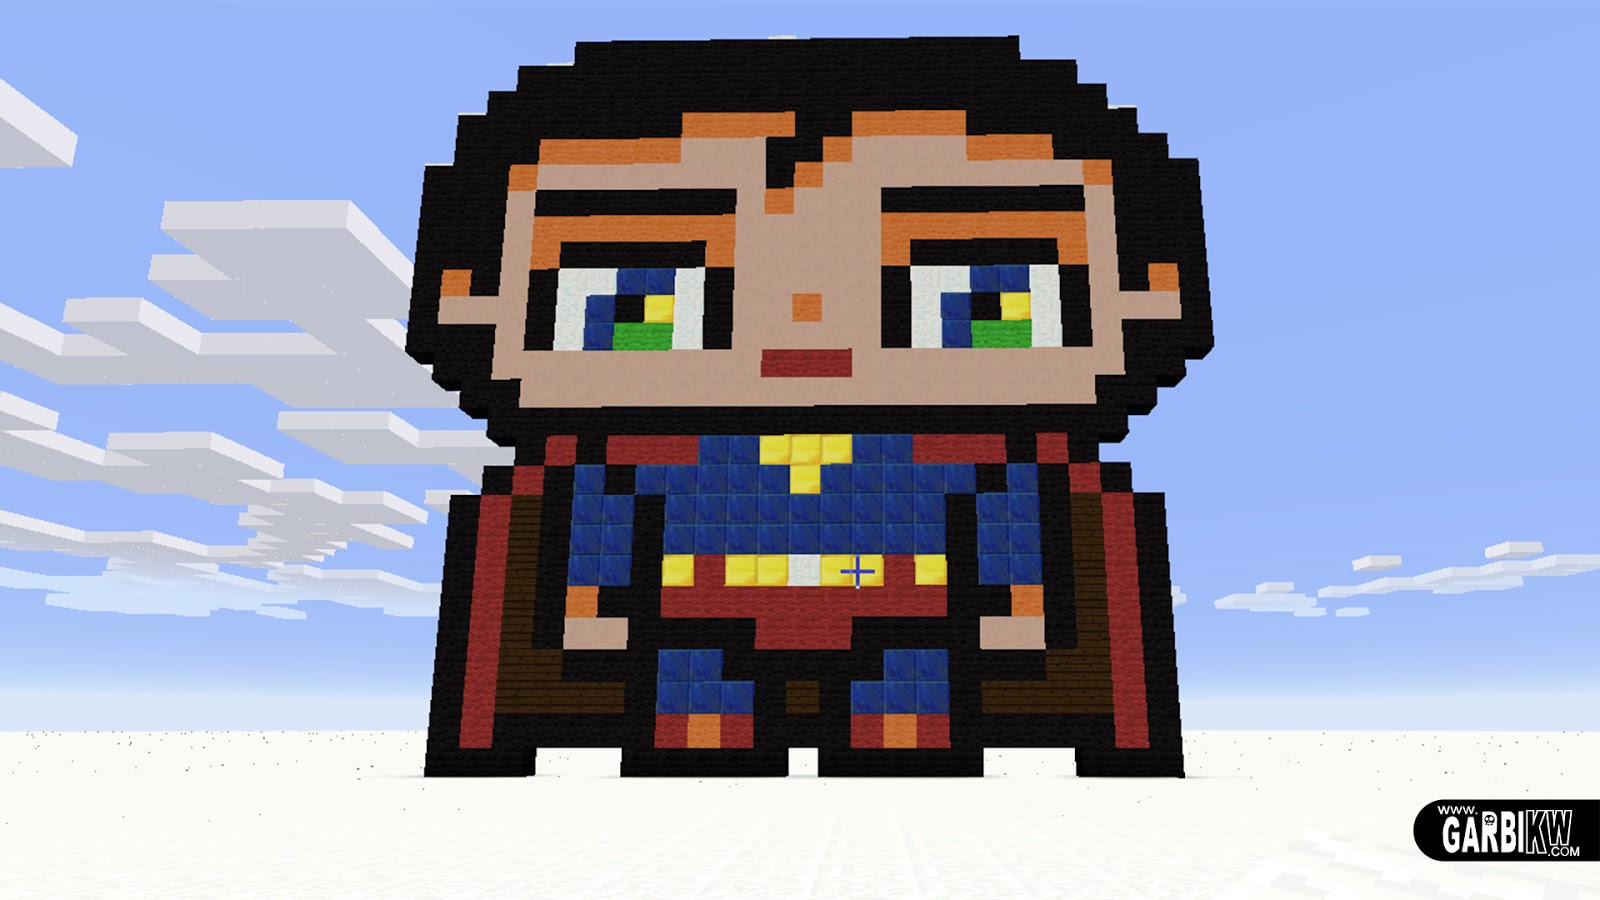 Minecraft Pixel Art How To Make A Cute Superman By Garbi Kw